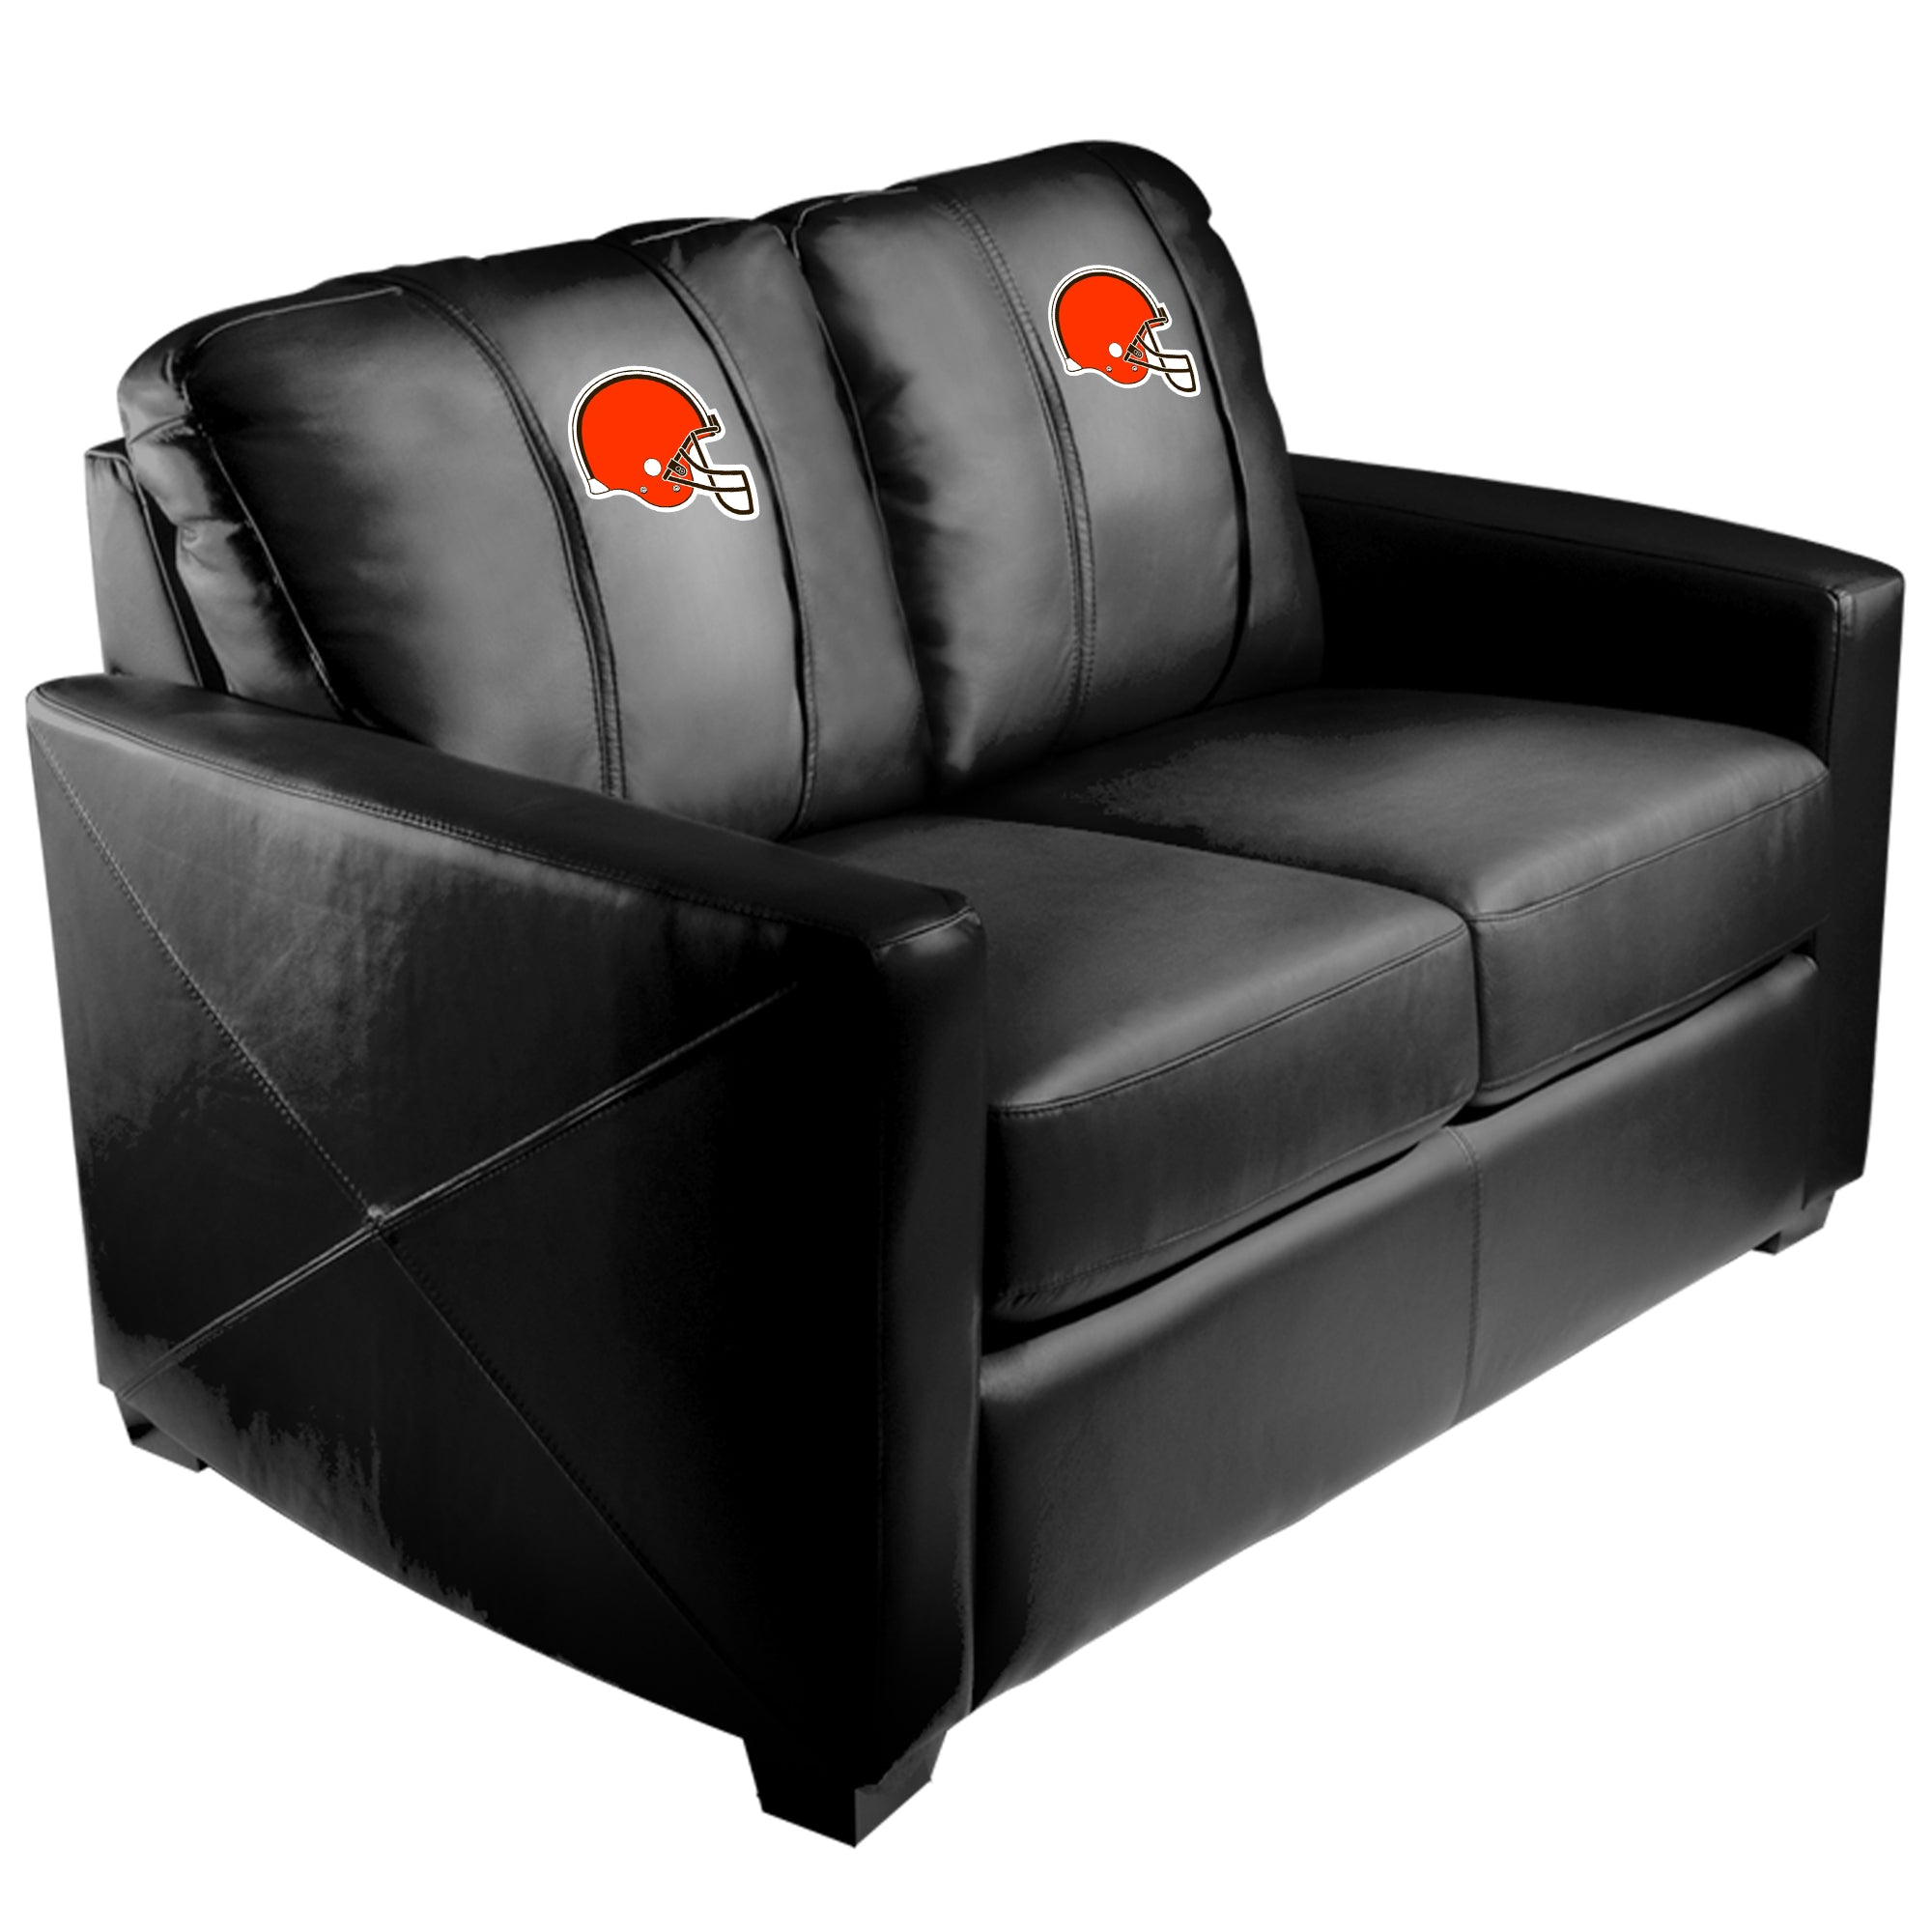 Silver Loveseat with  Cleveland Browns Helmet Logo